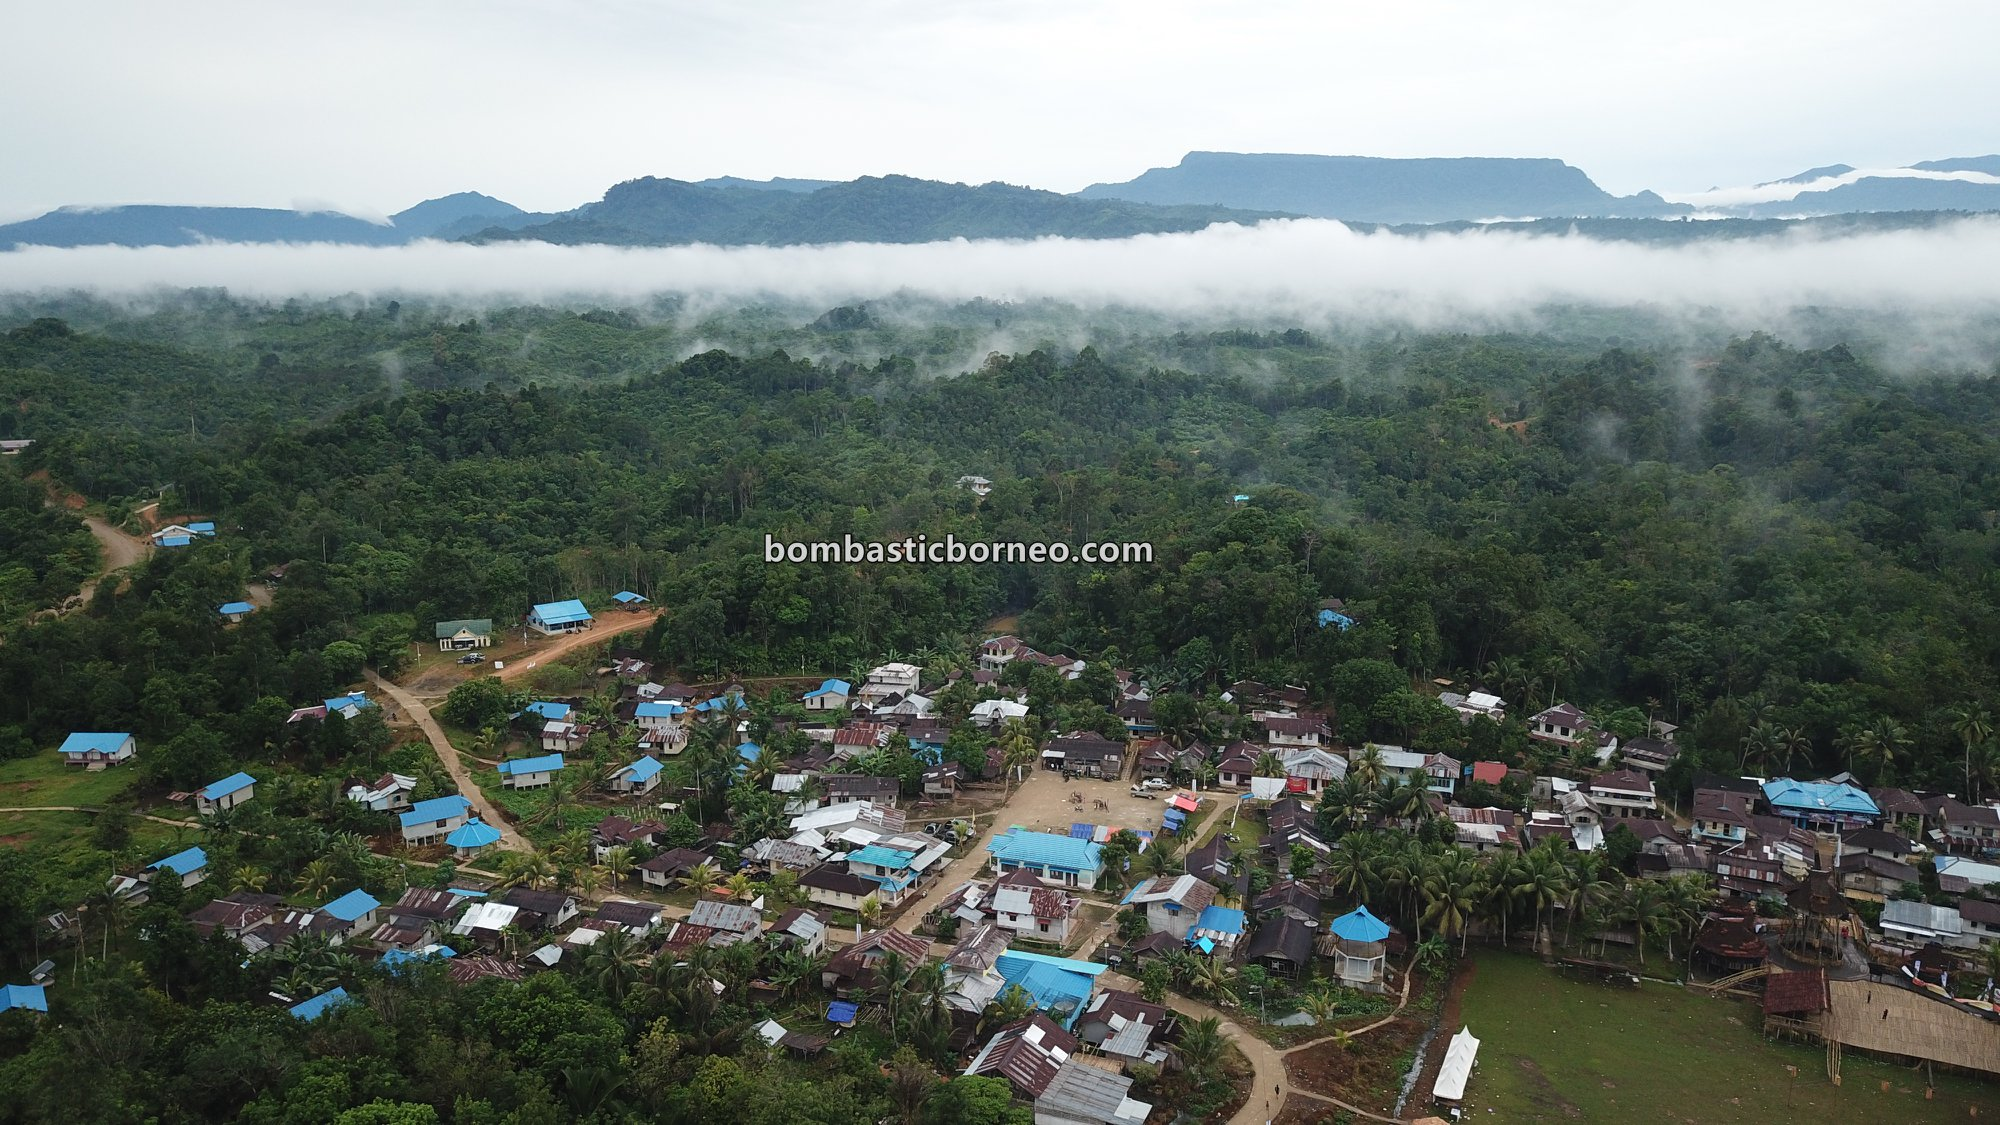 adventure, traditional, village, backpackers, culture, Desa Hli Buei, Dayak Bidayuh, Ethnic, native, Obyek wisata, Tourism, travel guide, Trans Borneo, 穿越婆罗洲达雅部落, 西加里曼丹原住民